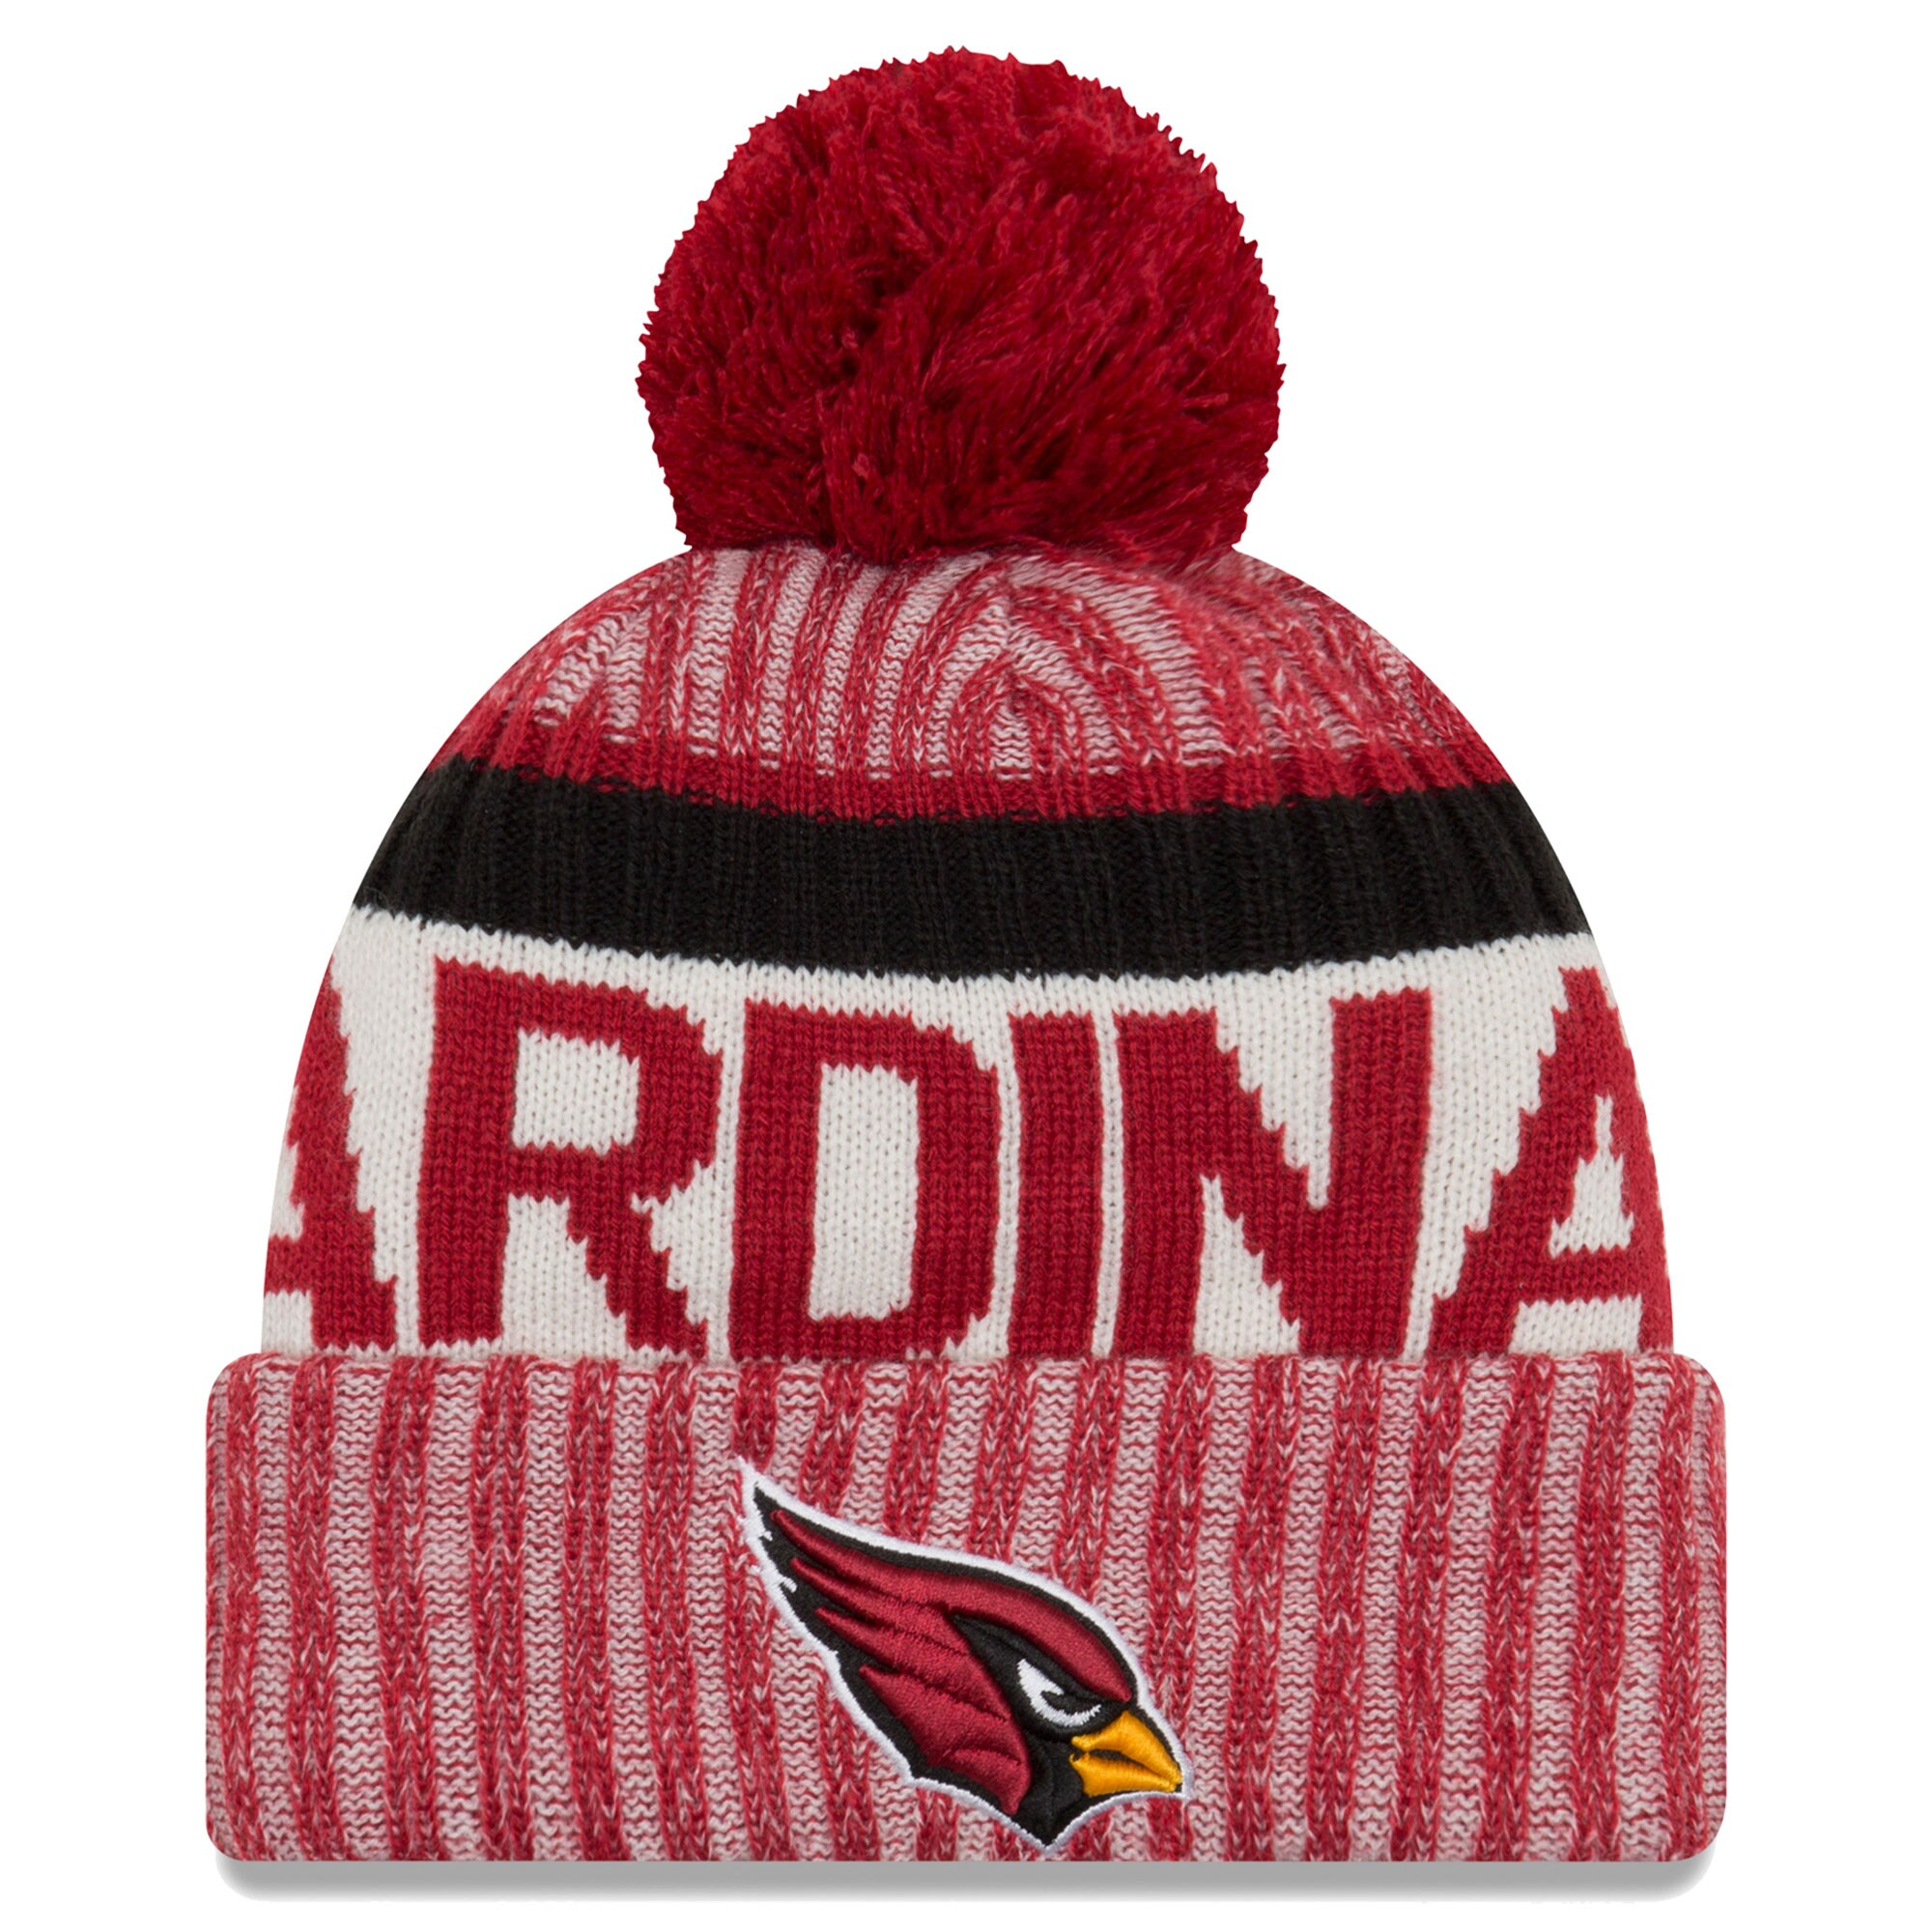 Arizona Cardinals New Era 2017 Sideline Official Sport Knit Hat - Cardinal